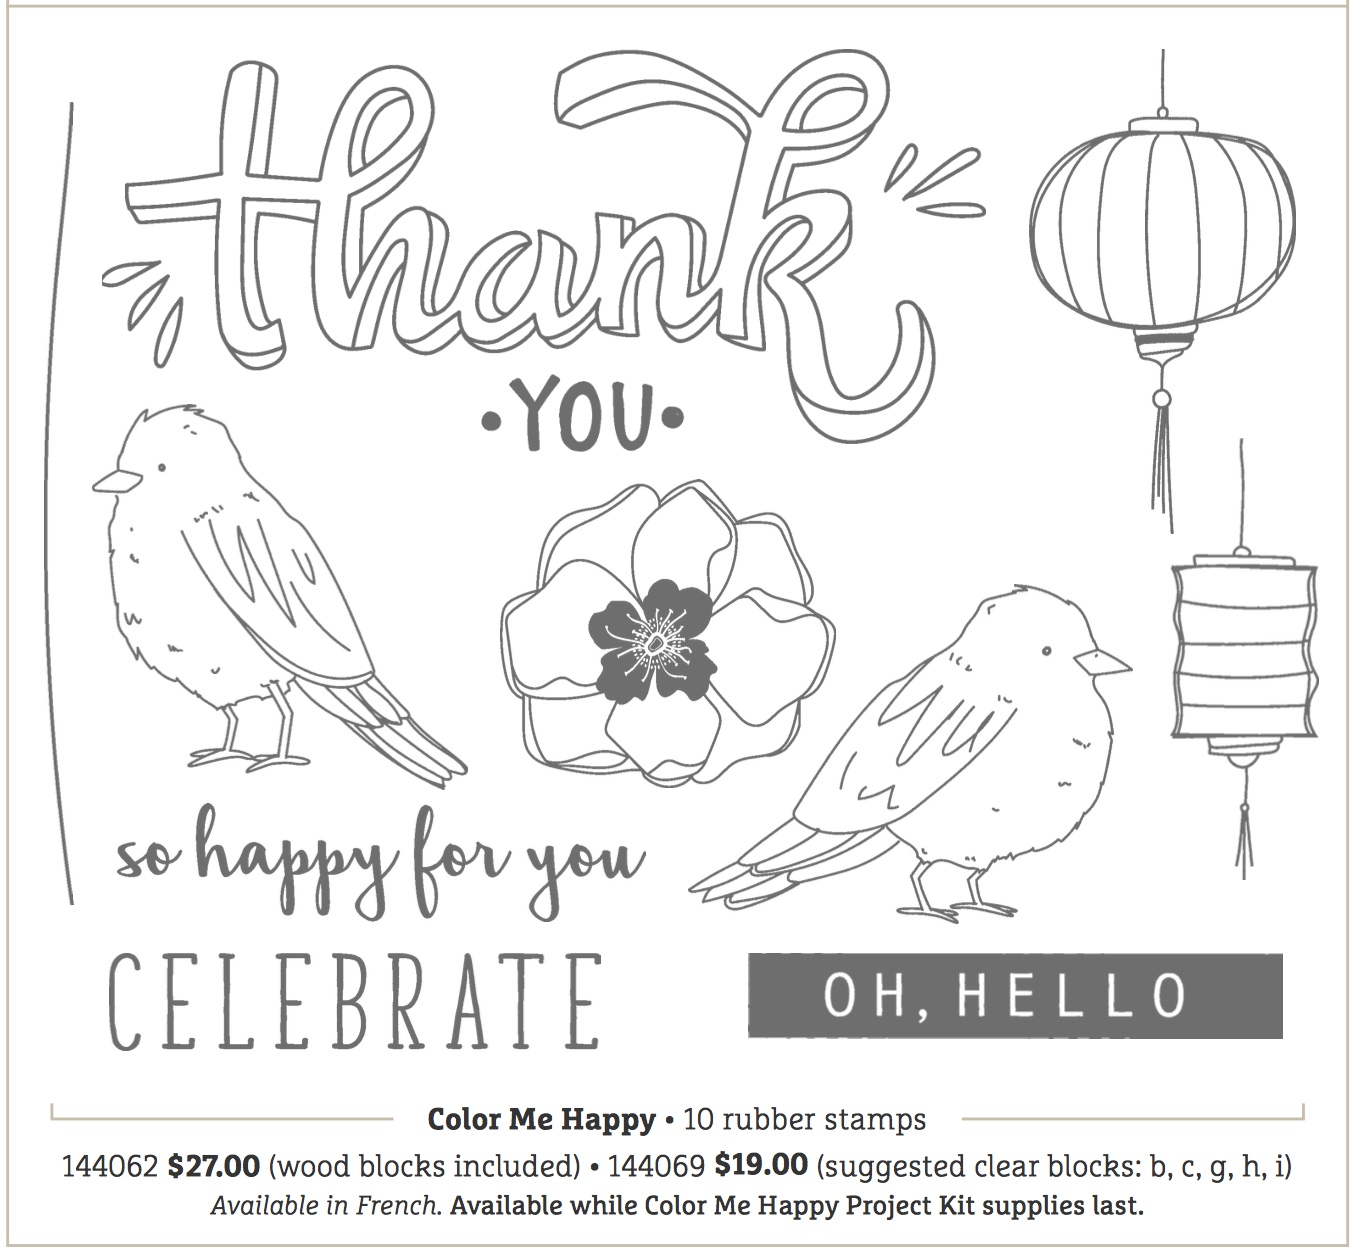 Stampin up color me merry thank you stamps n lingers along with the stampin blends themselves weve got a wonderful new stamp set called color me happy nvjuhfo Image collections